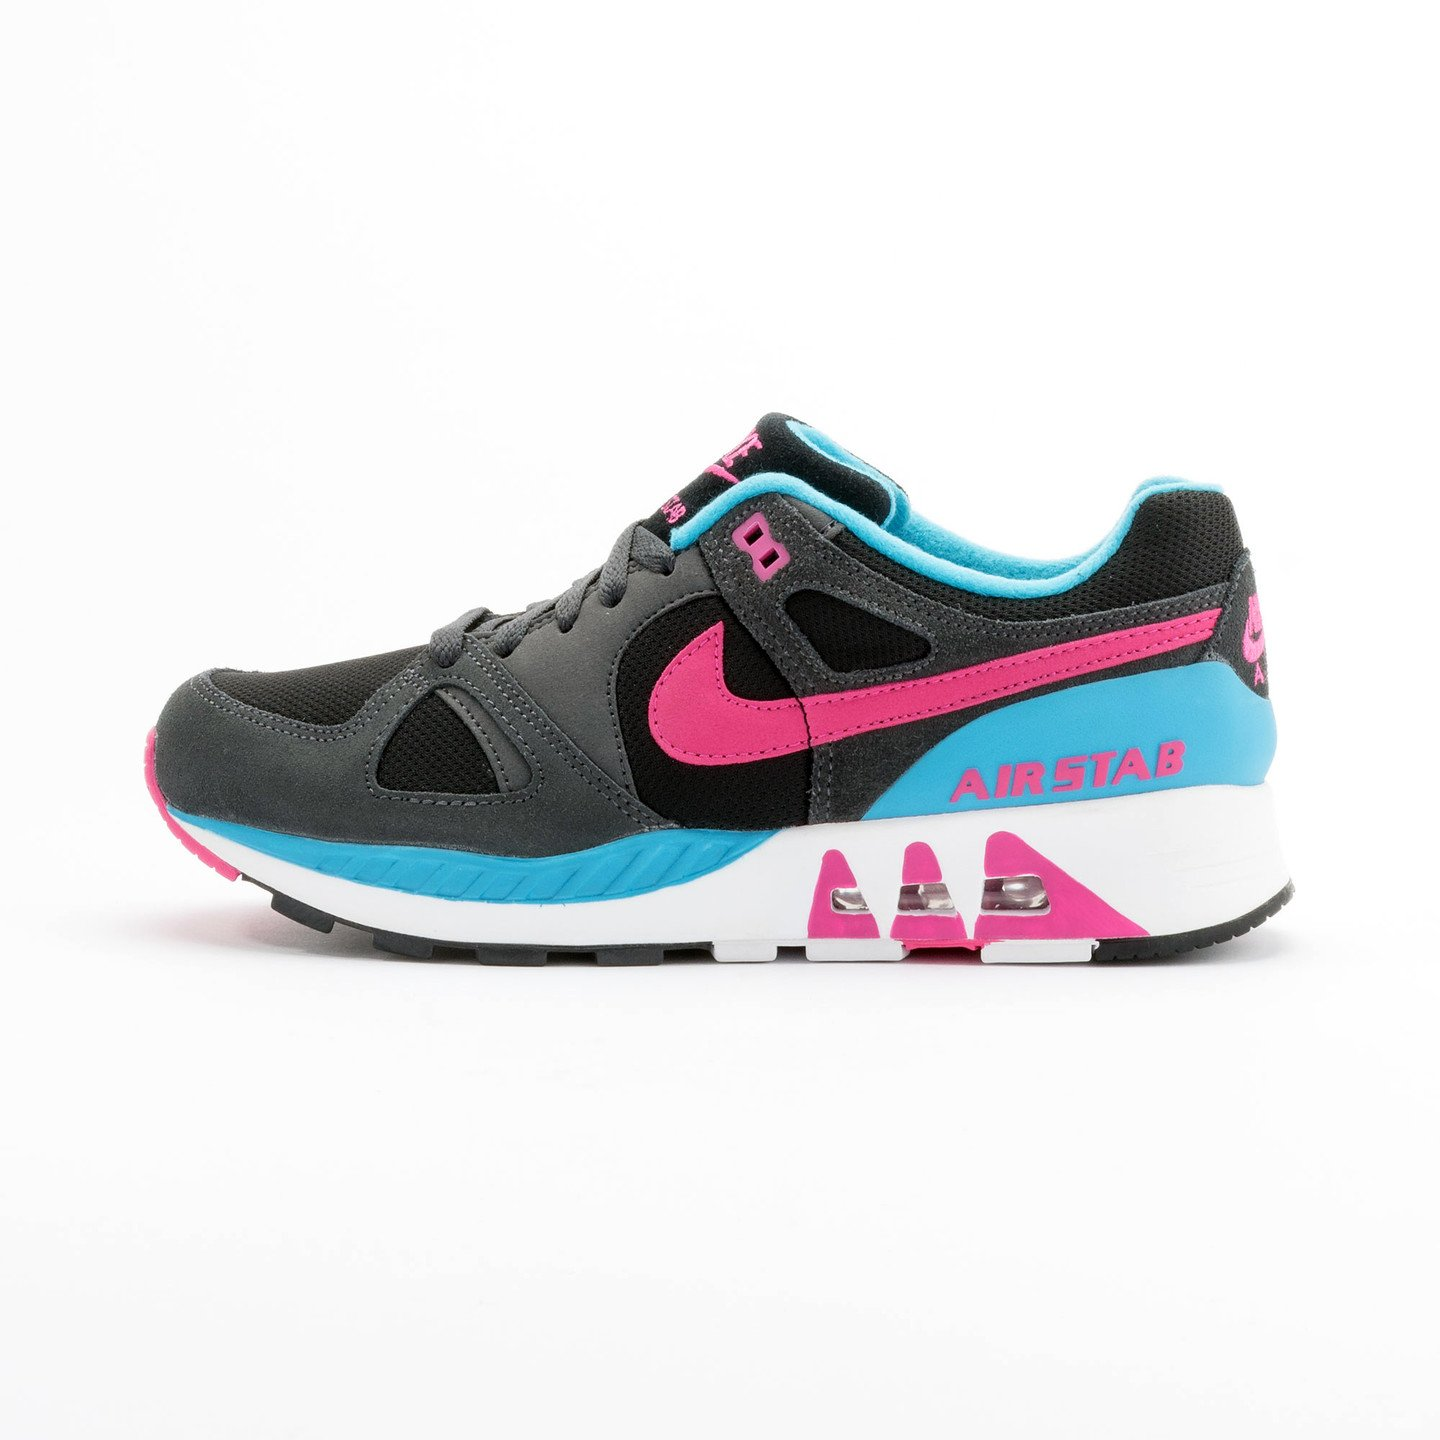 Nike Air Stab Black/Hot Pink-Anthrct-Bl Lgn 312451-004-44